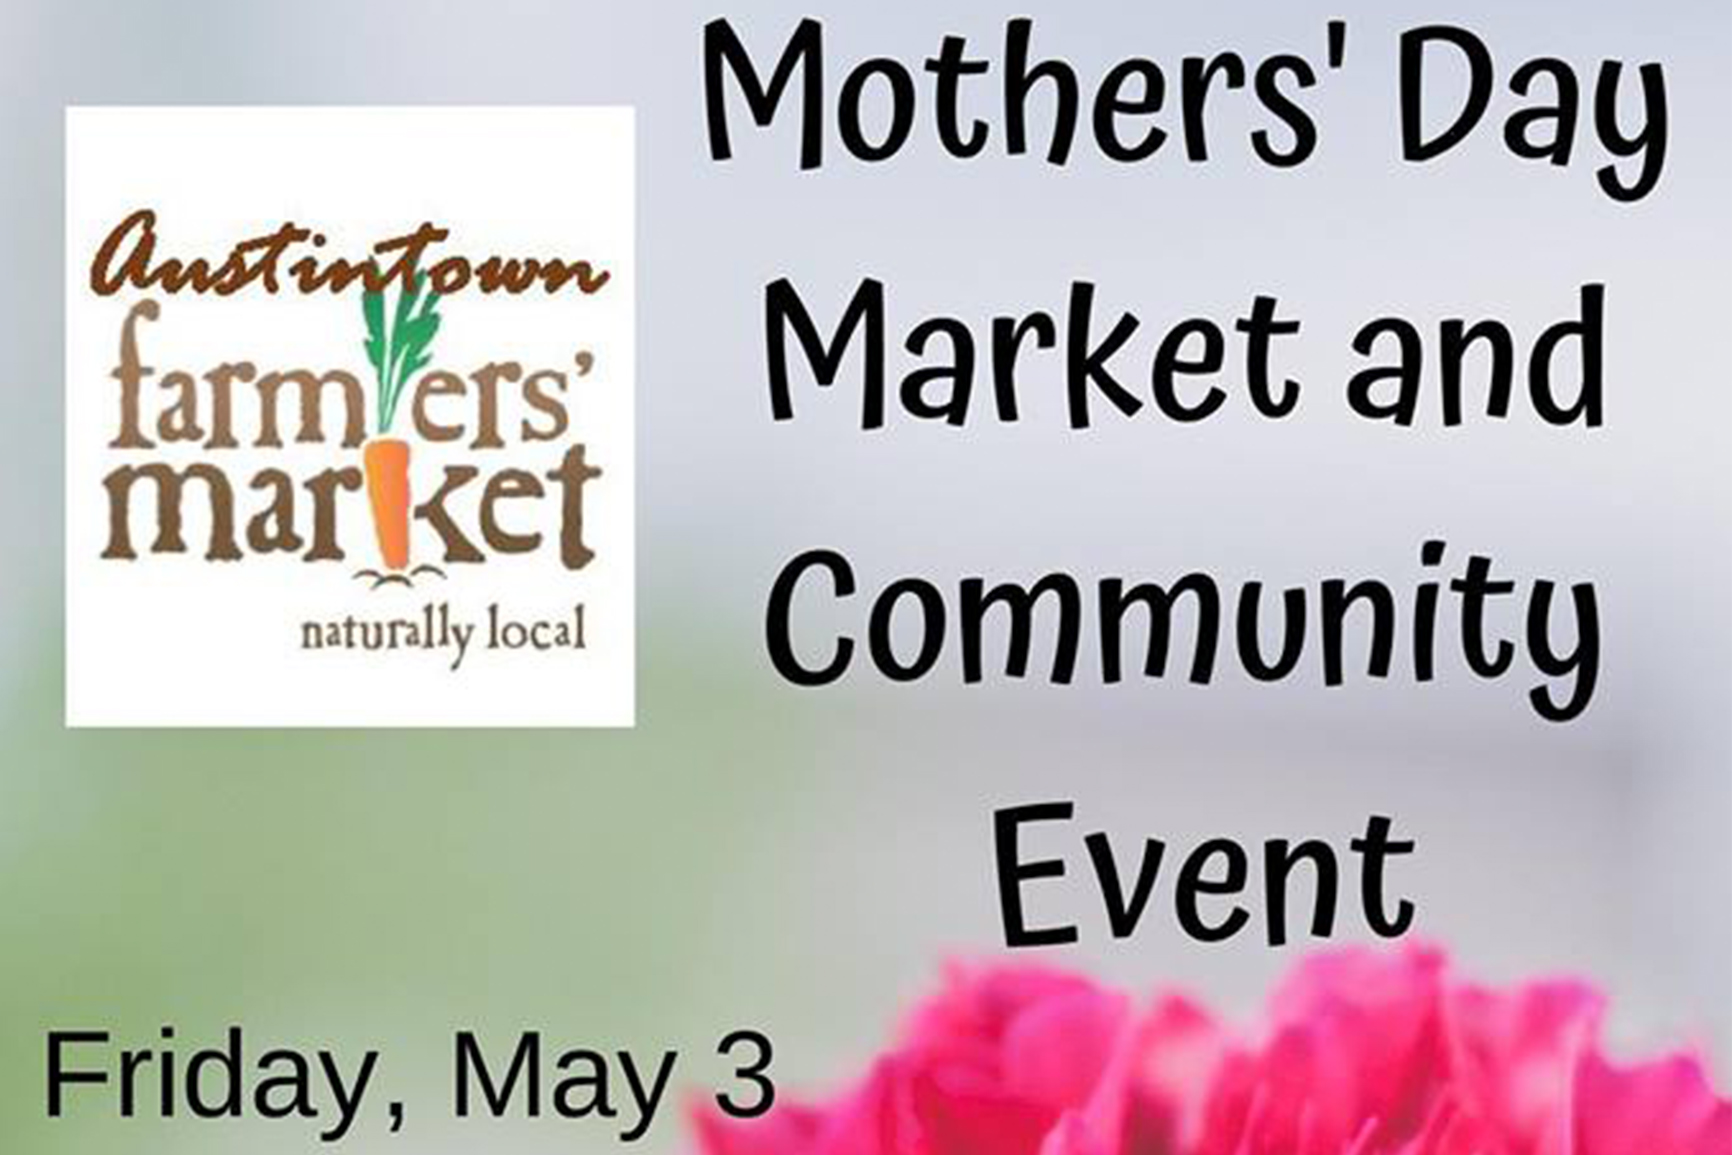 Austintown Farmers Market Mother's Day